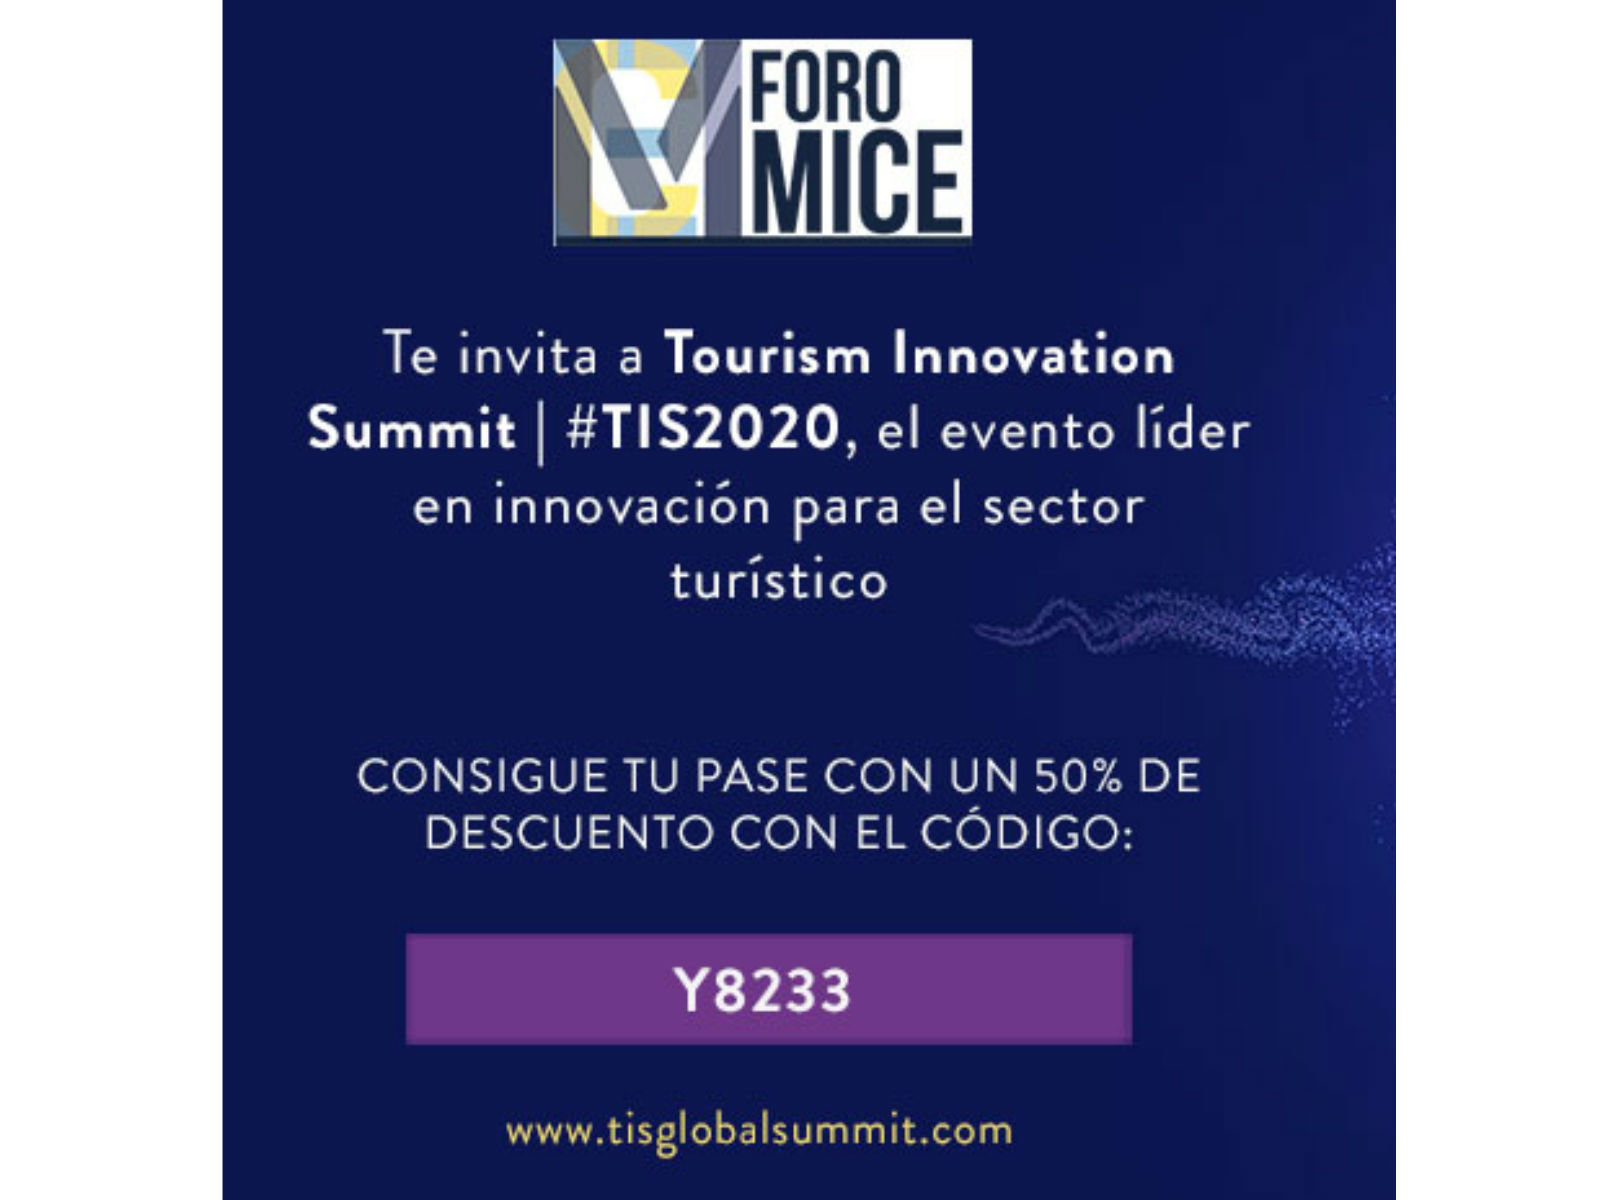 FORO MICE, colaborador de Tourism Innovation Summit 2020